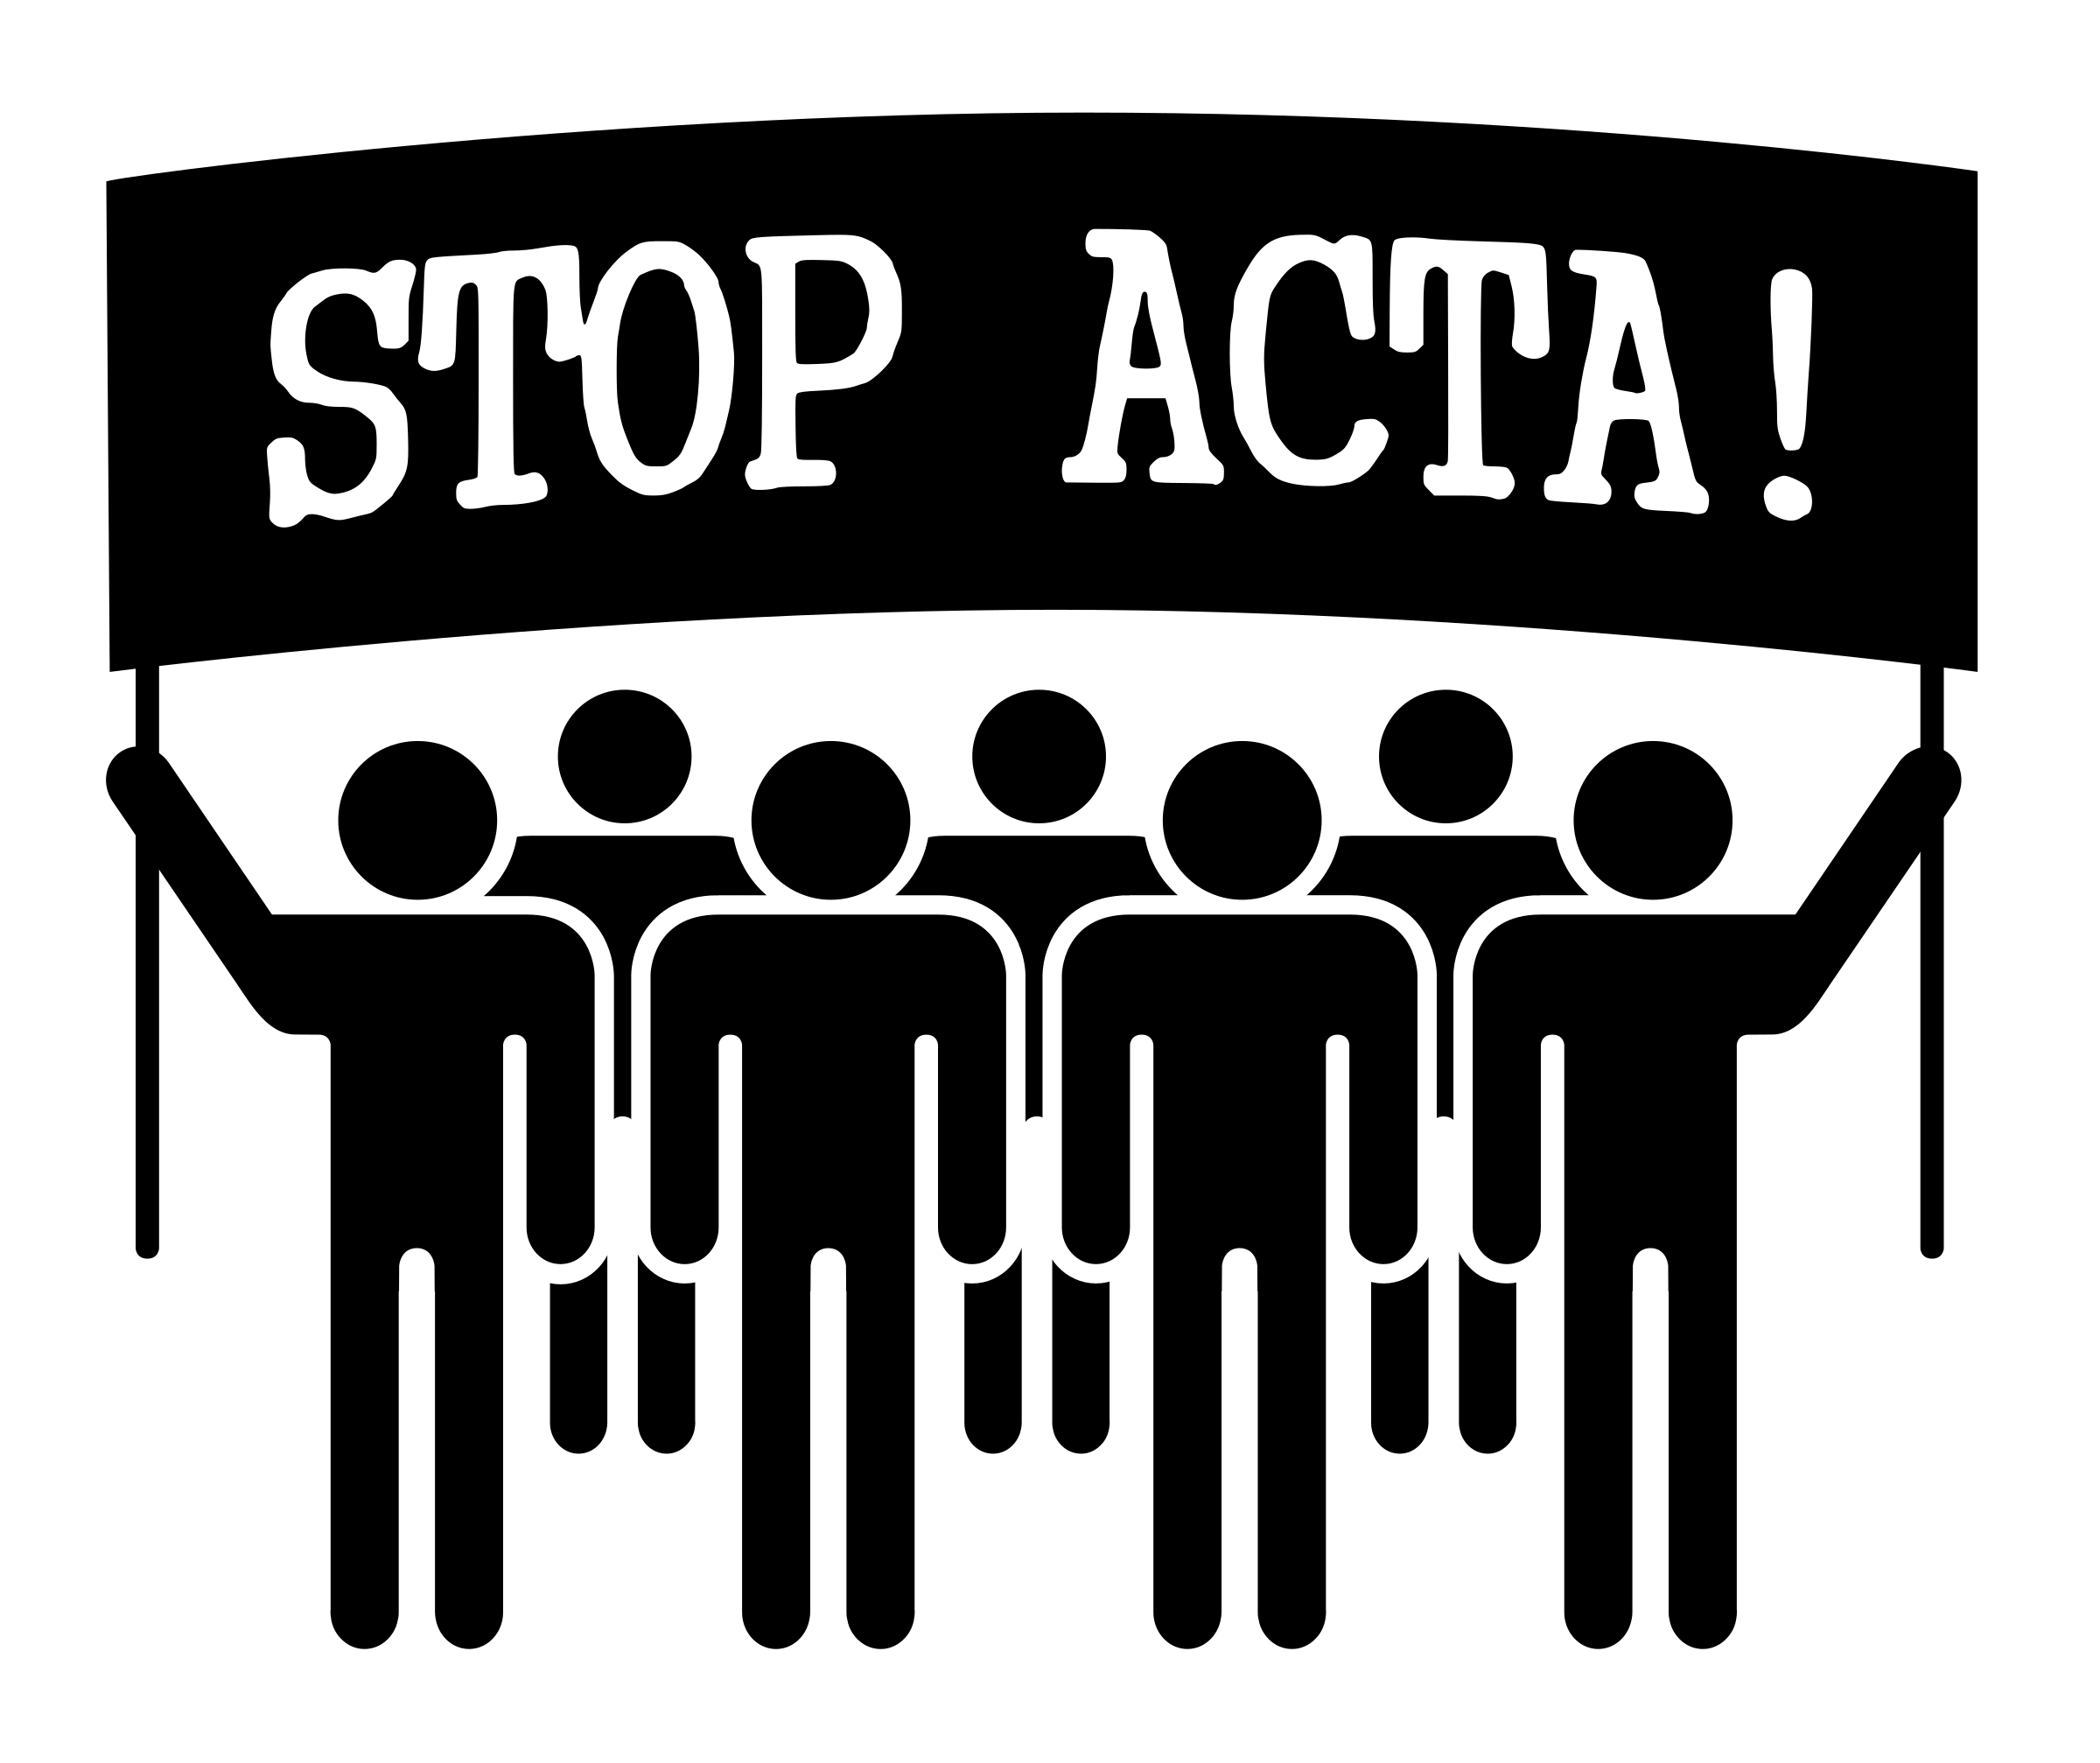 STOP ACTA by worker